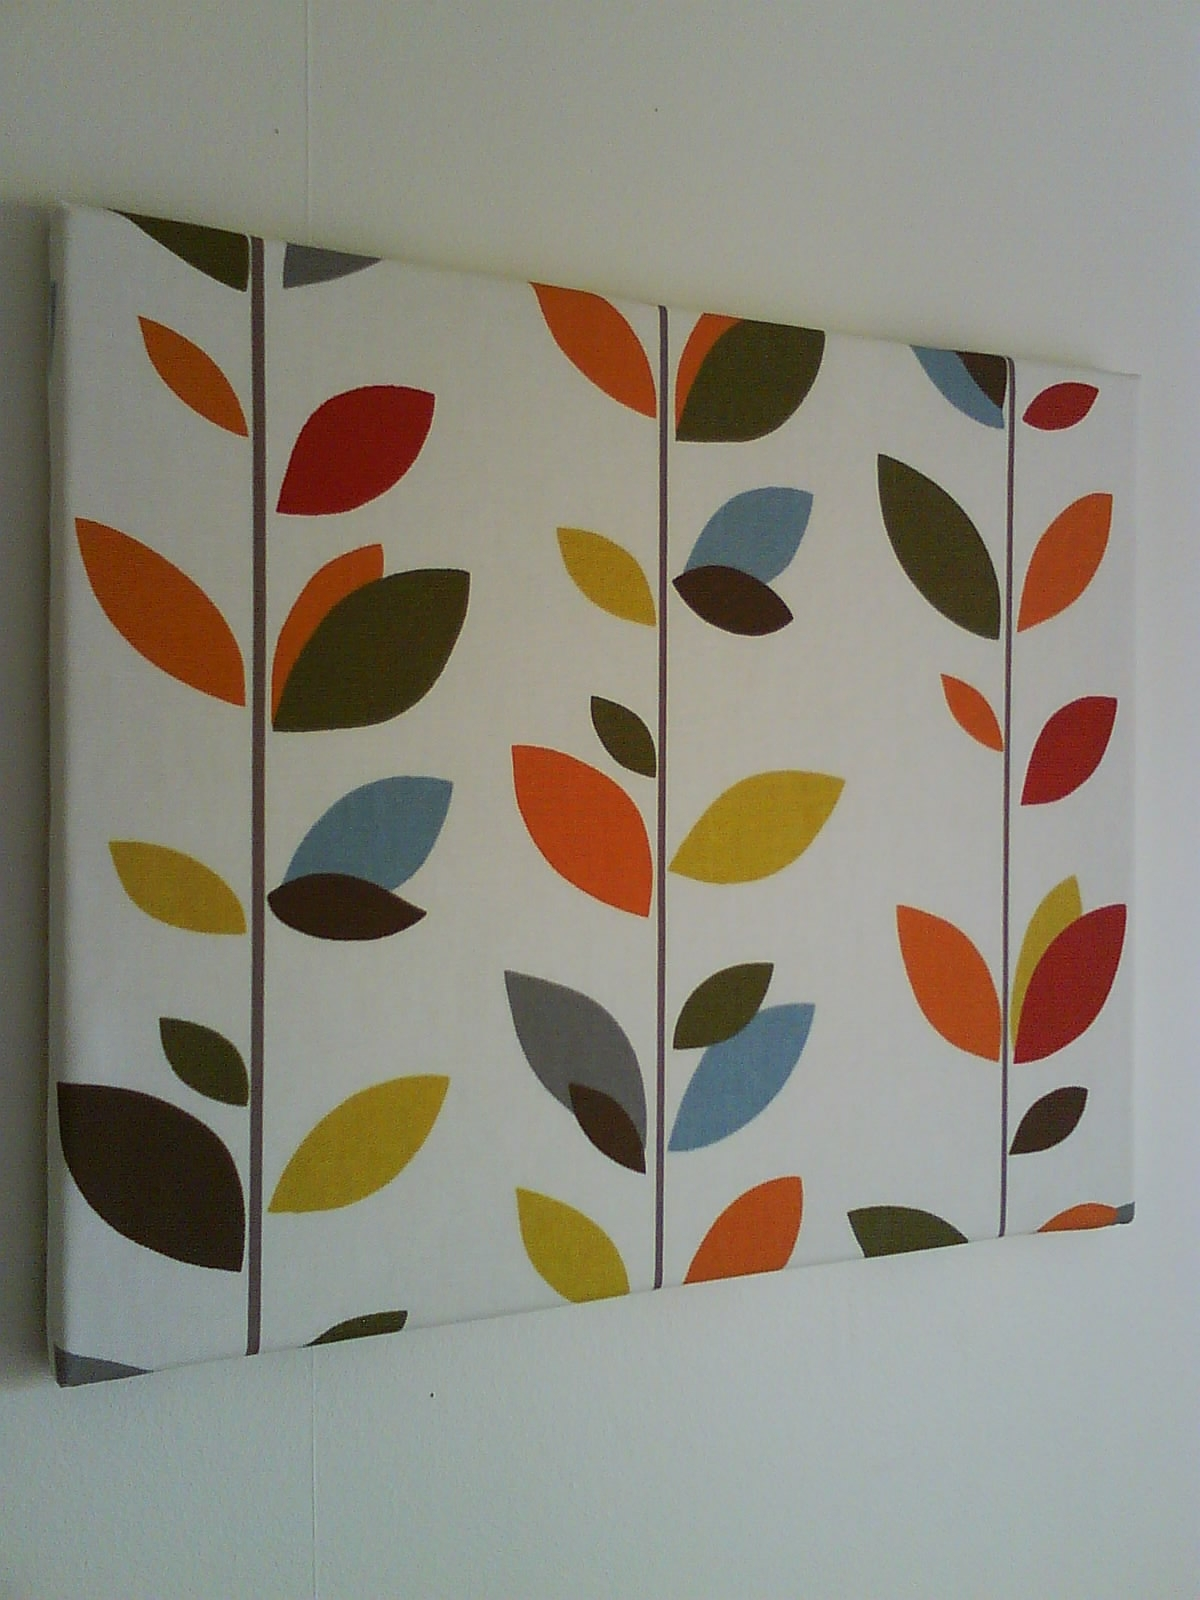 Popular Anminternational: Colourful Multi Stem Fabric Canvas Wall Art With Canvas Wall Art With Fabric (View 13 of 15)